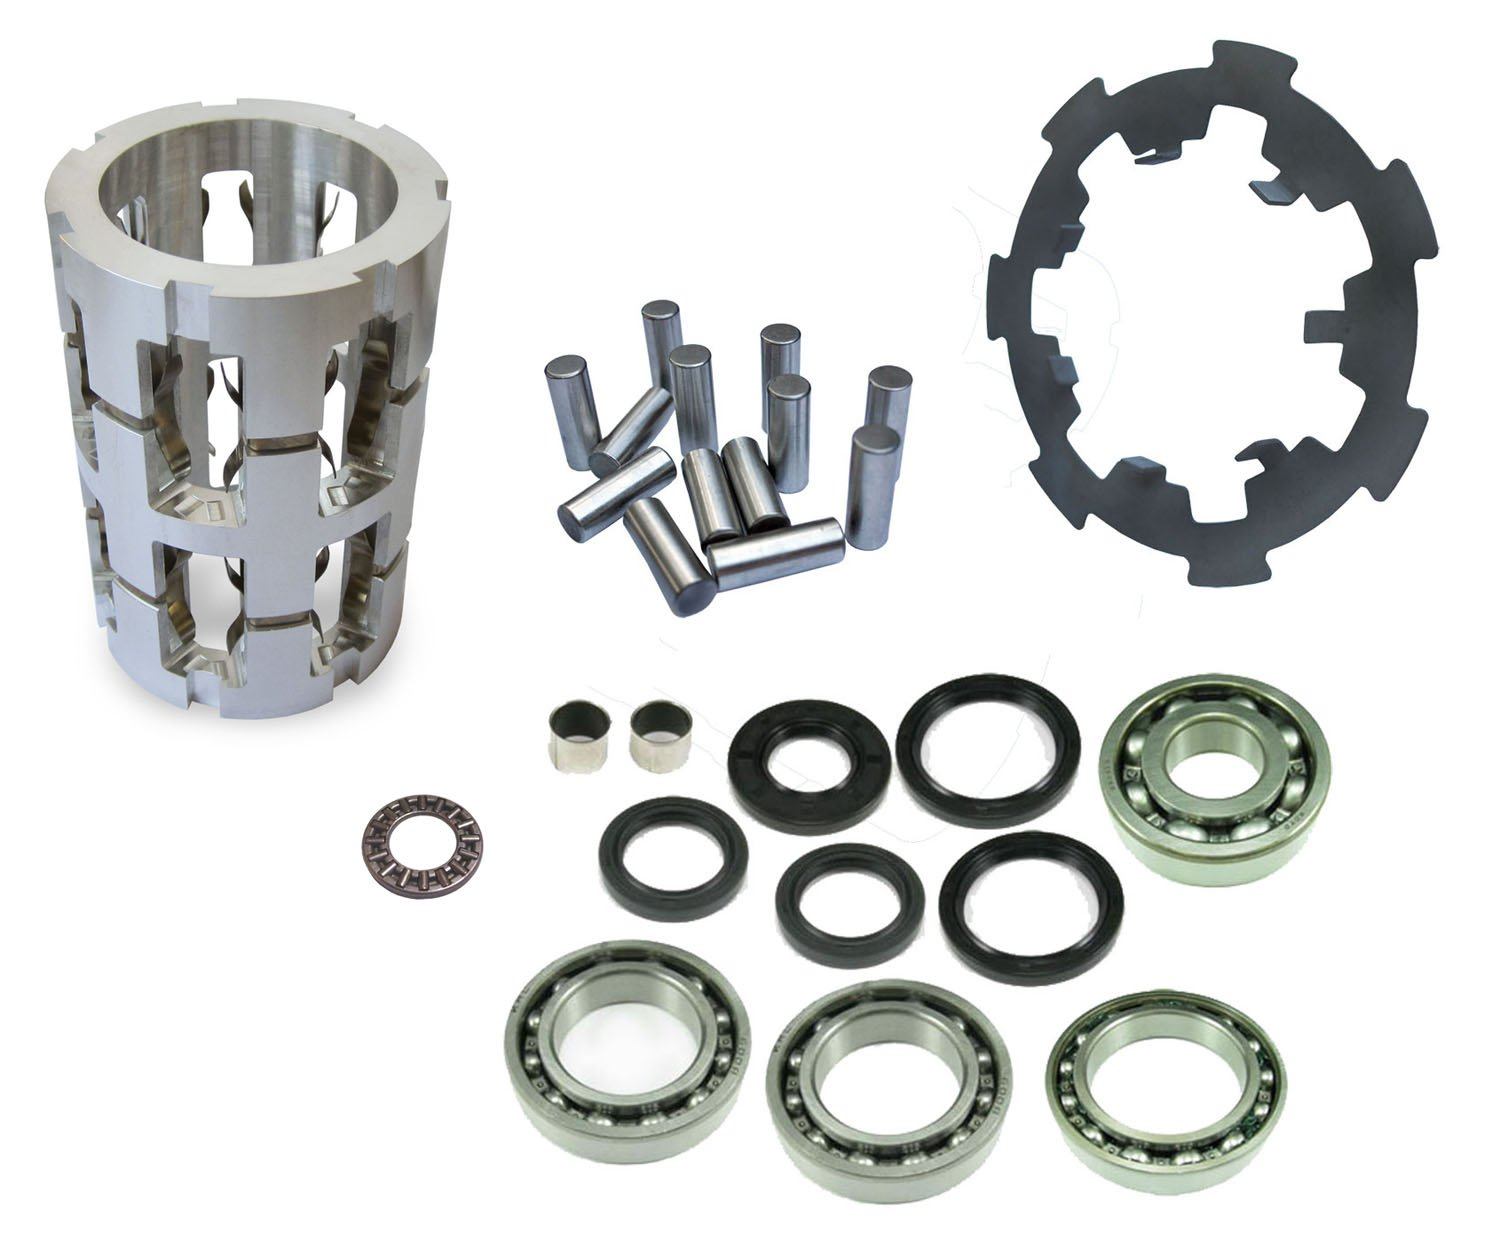 Polaris Sportsman 400 500 (2004-06) Front Differential Rebuild Kit - ALUMINUM CAGE